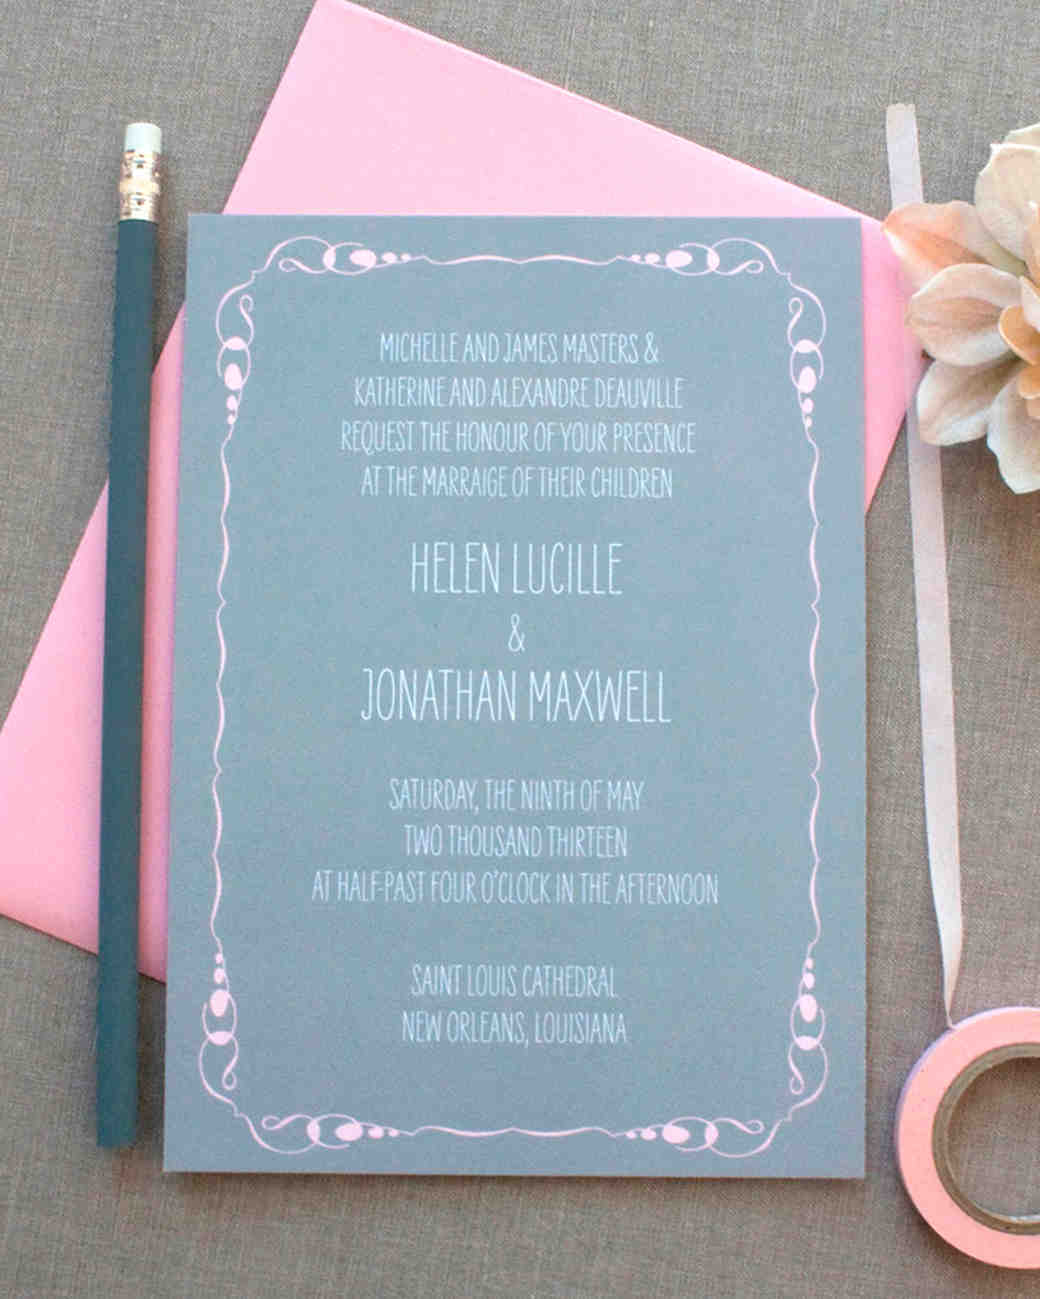 Words For Wedding Invites: 8 Details To Include When Wording Your Wedding Invitation